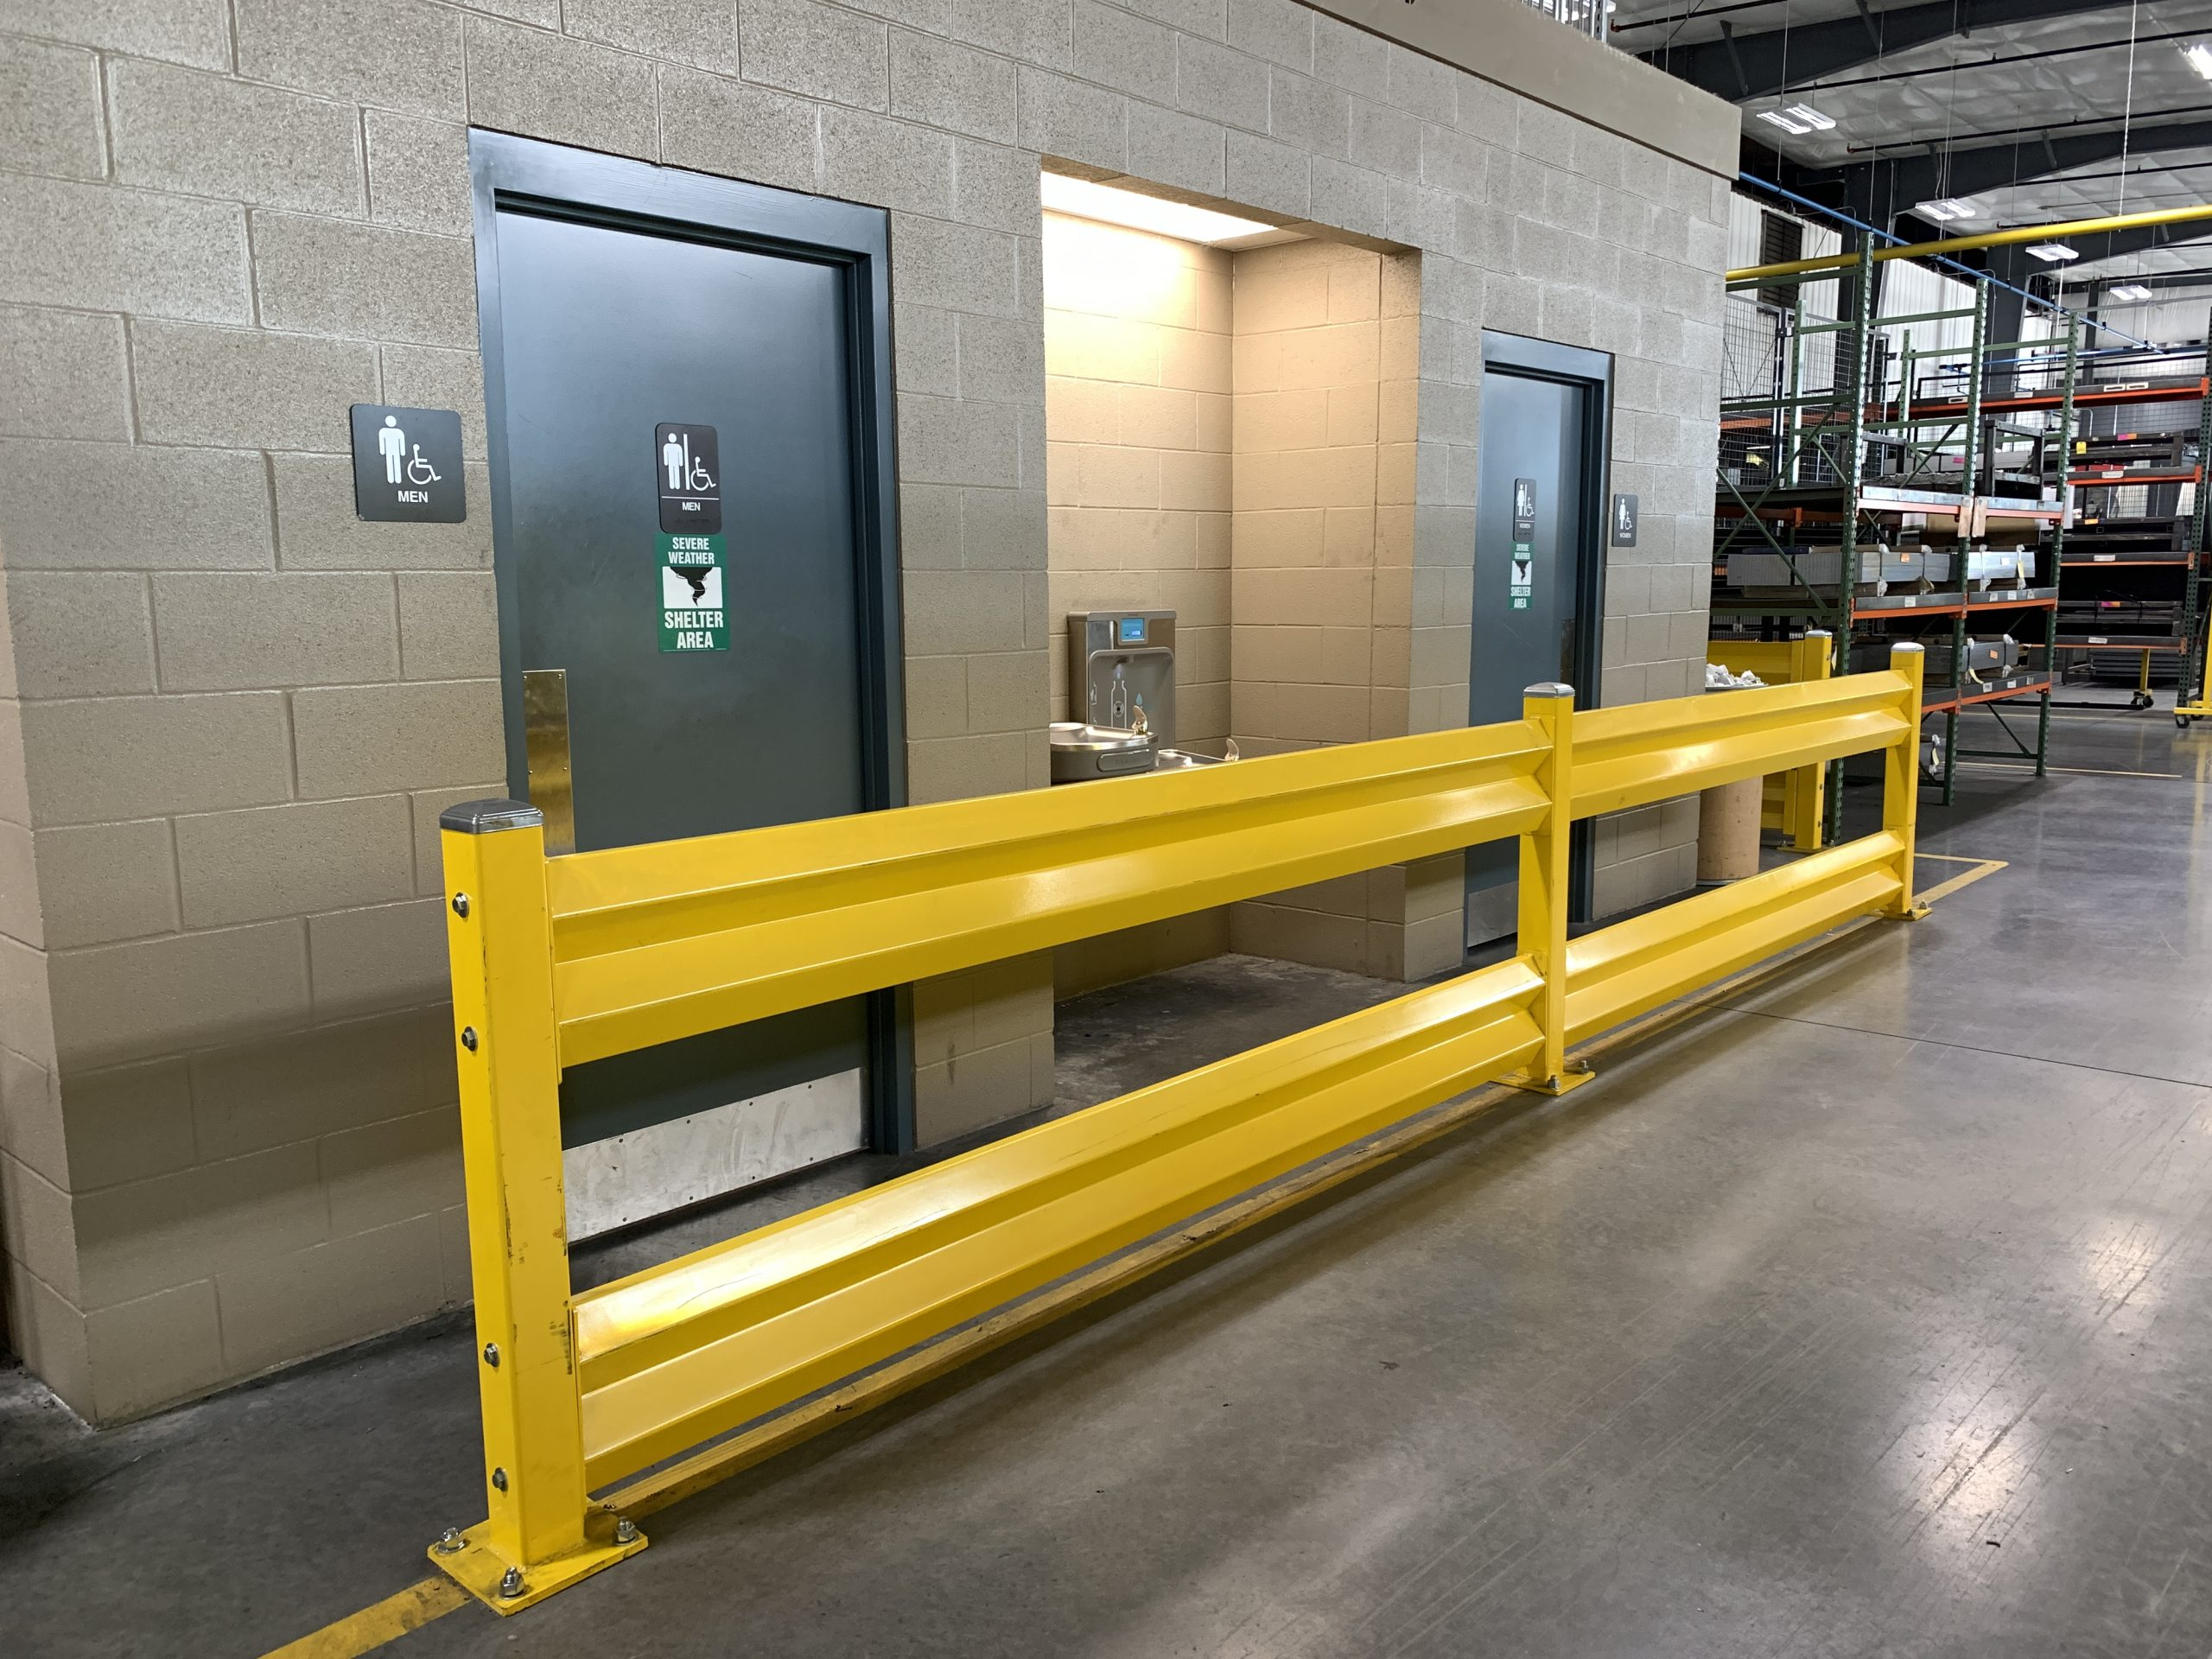 Warehouse Safety Barriers: 7 Keys to consider for your warehouse safety